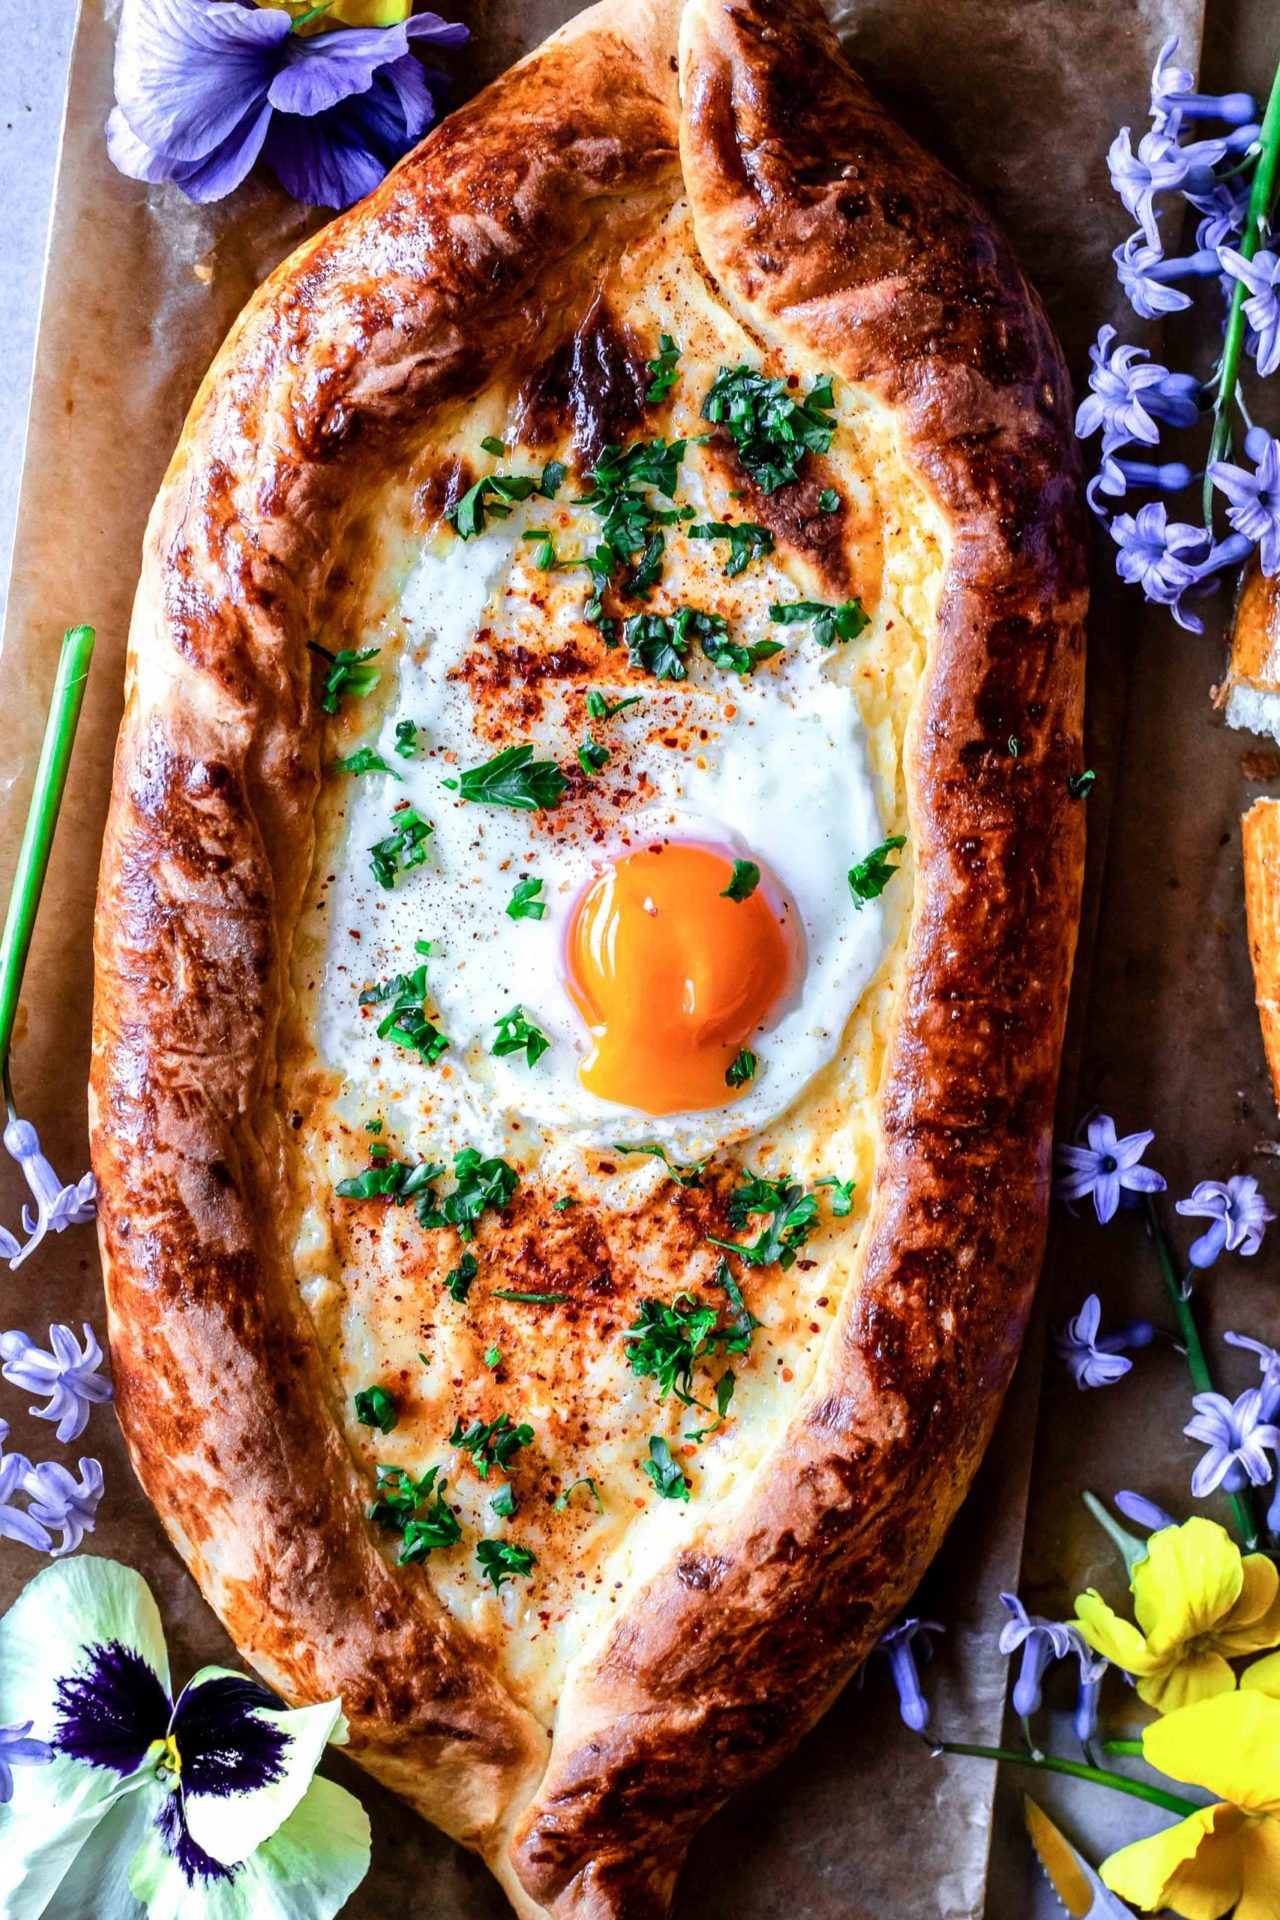 This Gluten Free Khachapuri (Georgian cheese bread) is so cheesy, super flavorful, savory, comforting, satisfying, soft, and so delicious!